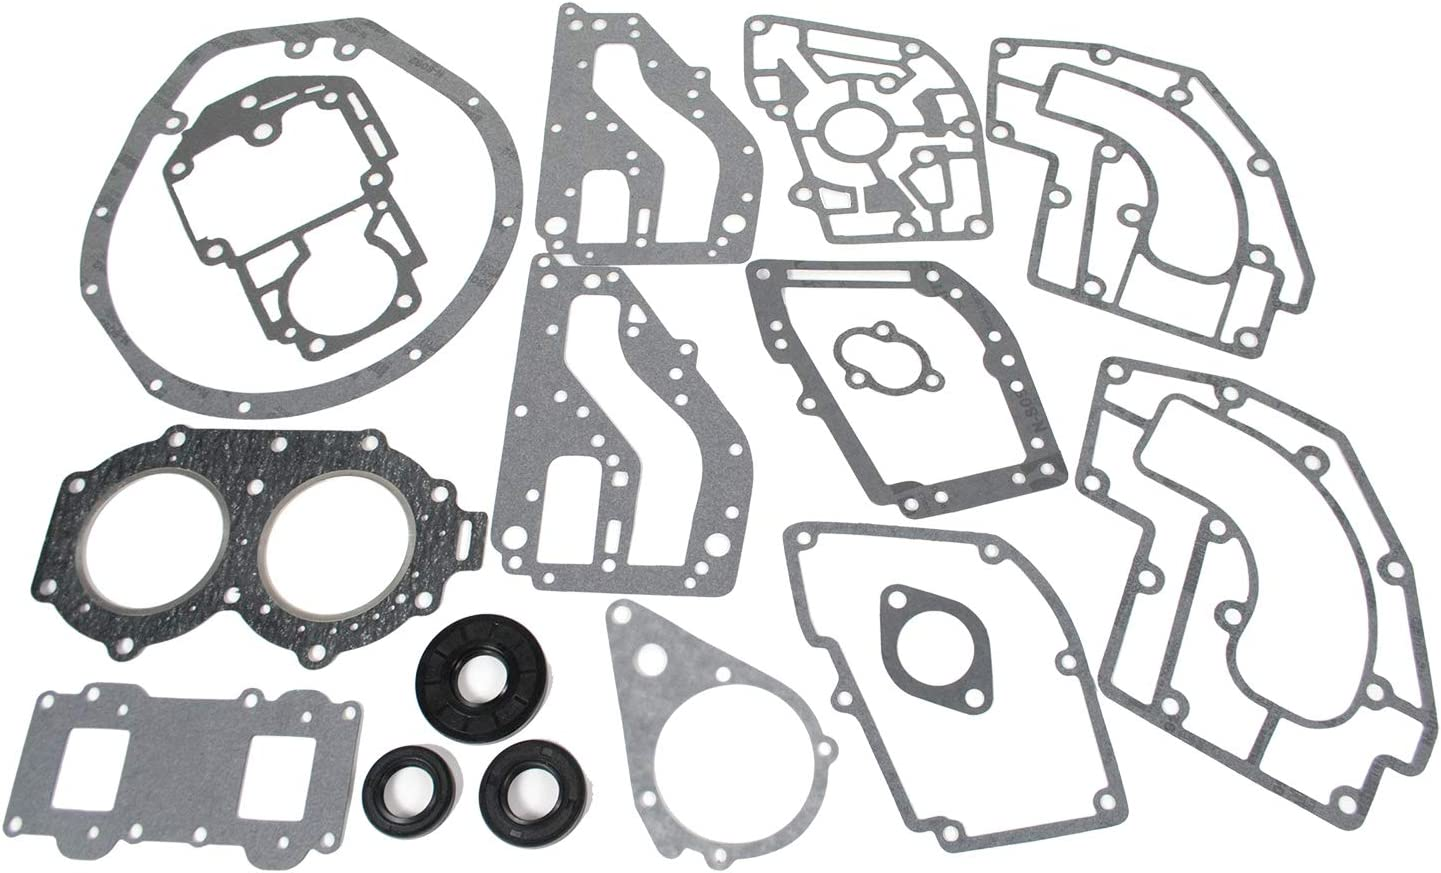 Yamaha Max 82% OFF 500 Complete Gasket Kit Runn Jammer Free Shipping New Wave Runner